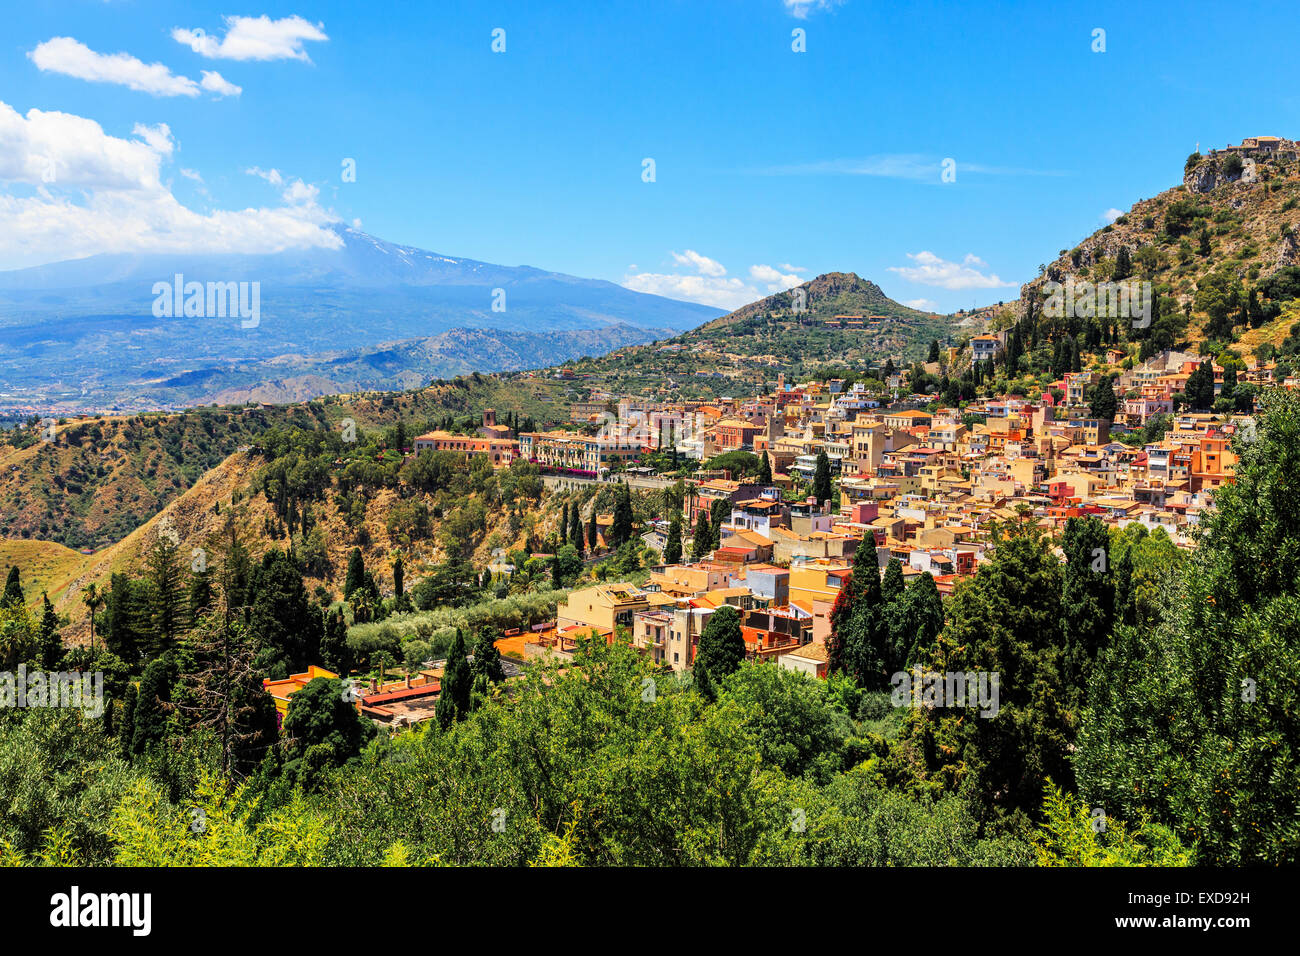 Village of Taormina and Mount Etna, Messina District, Sicily, Italy - Stock Image